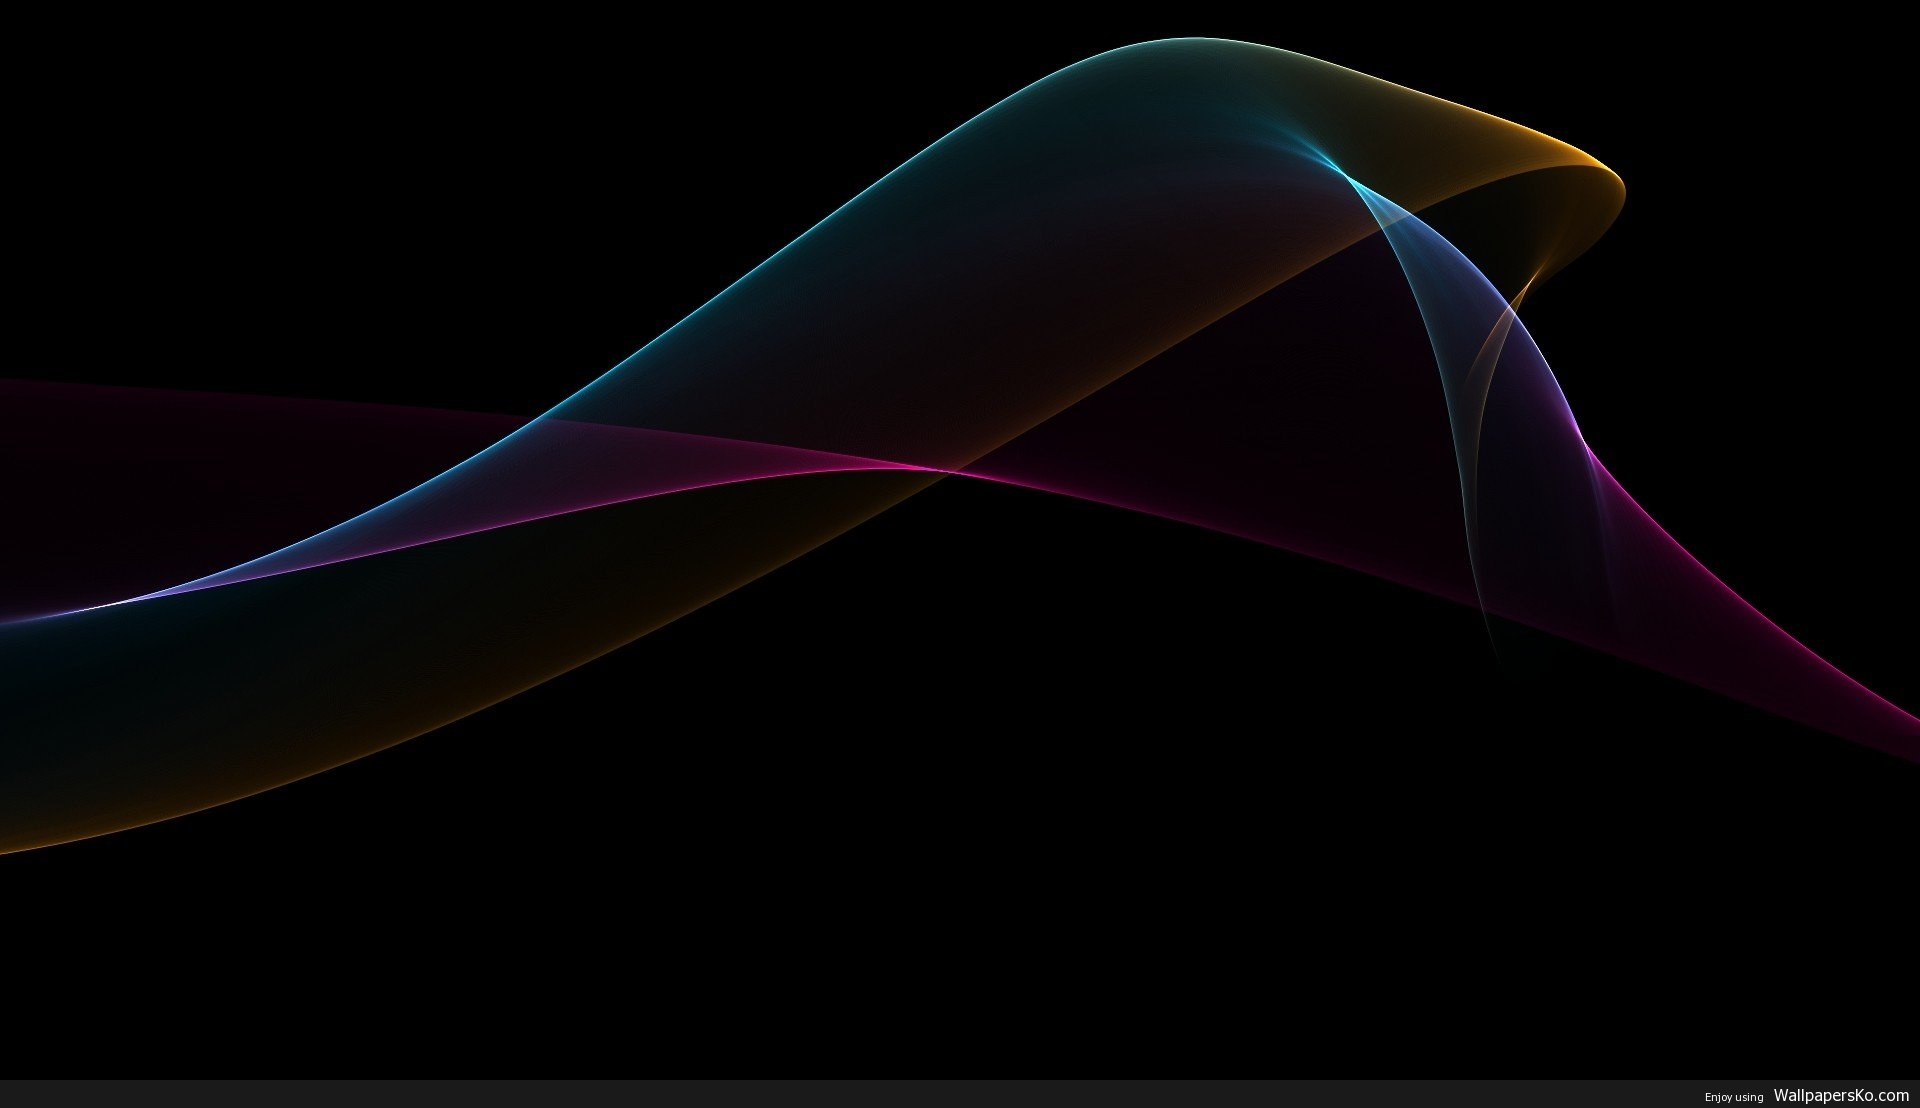 black-minimalist-abstract-wallpaper-abstract-black-wallpaper-wallpapers-fresh-waves-minimalistic-images-gradient